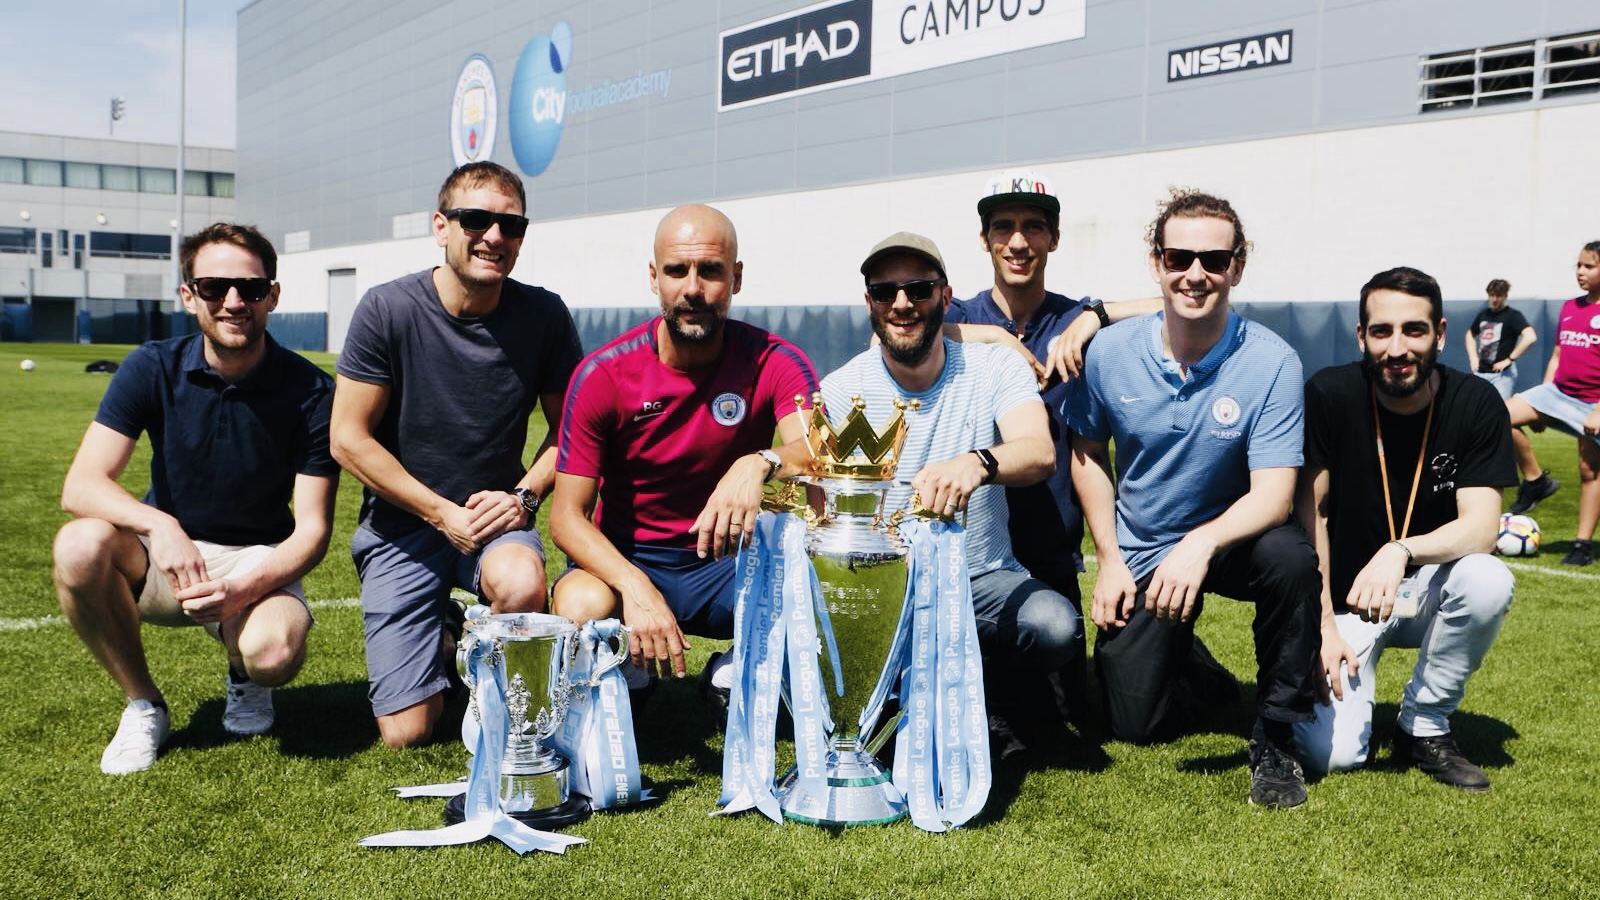 All or Nothing: Manchester City - Season 1 [Sub: Eng]